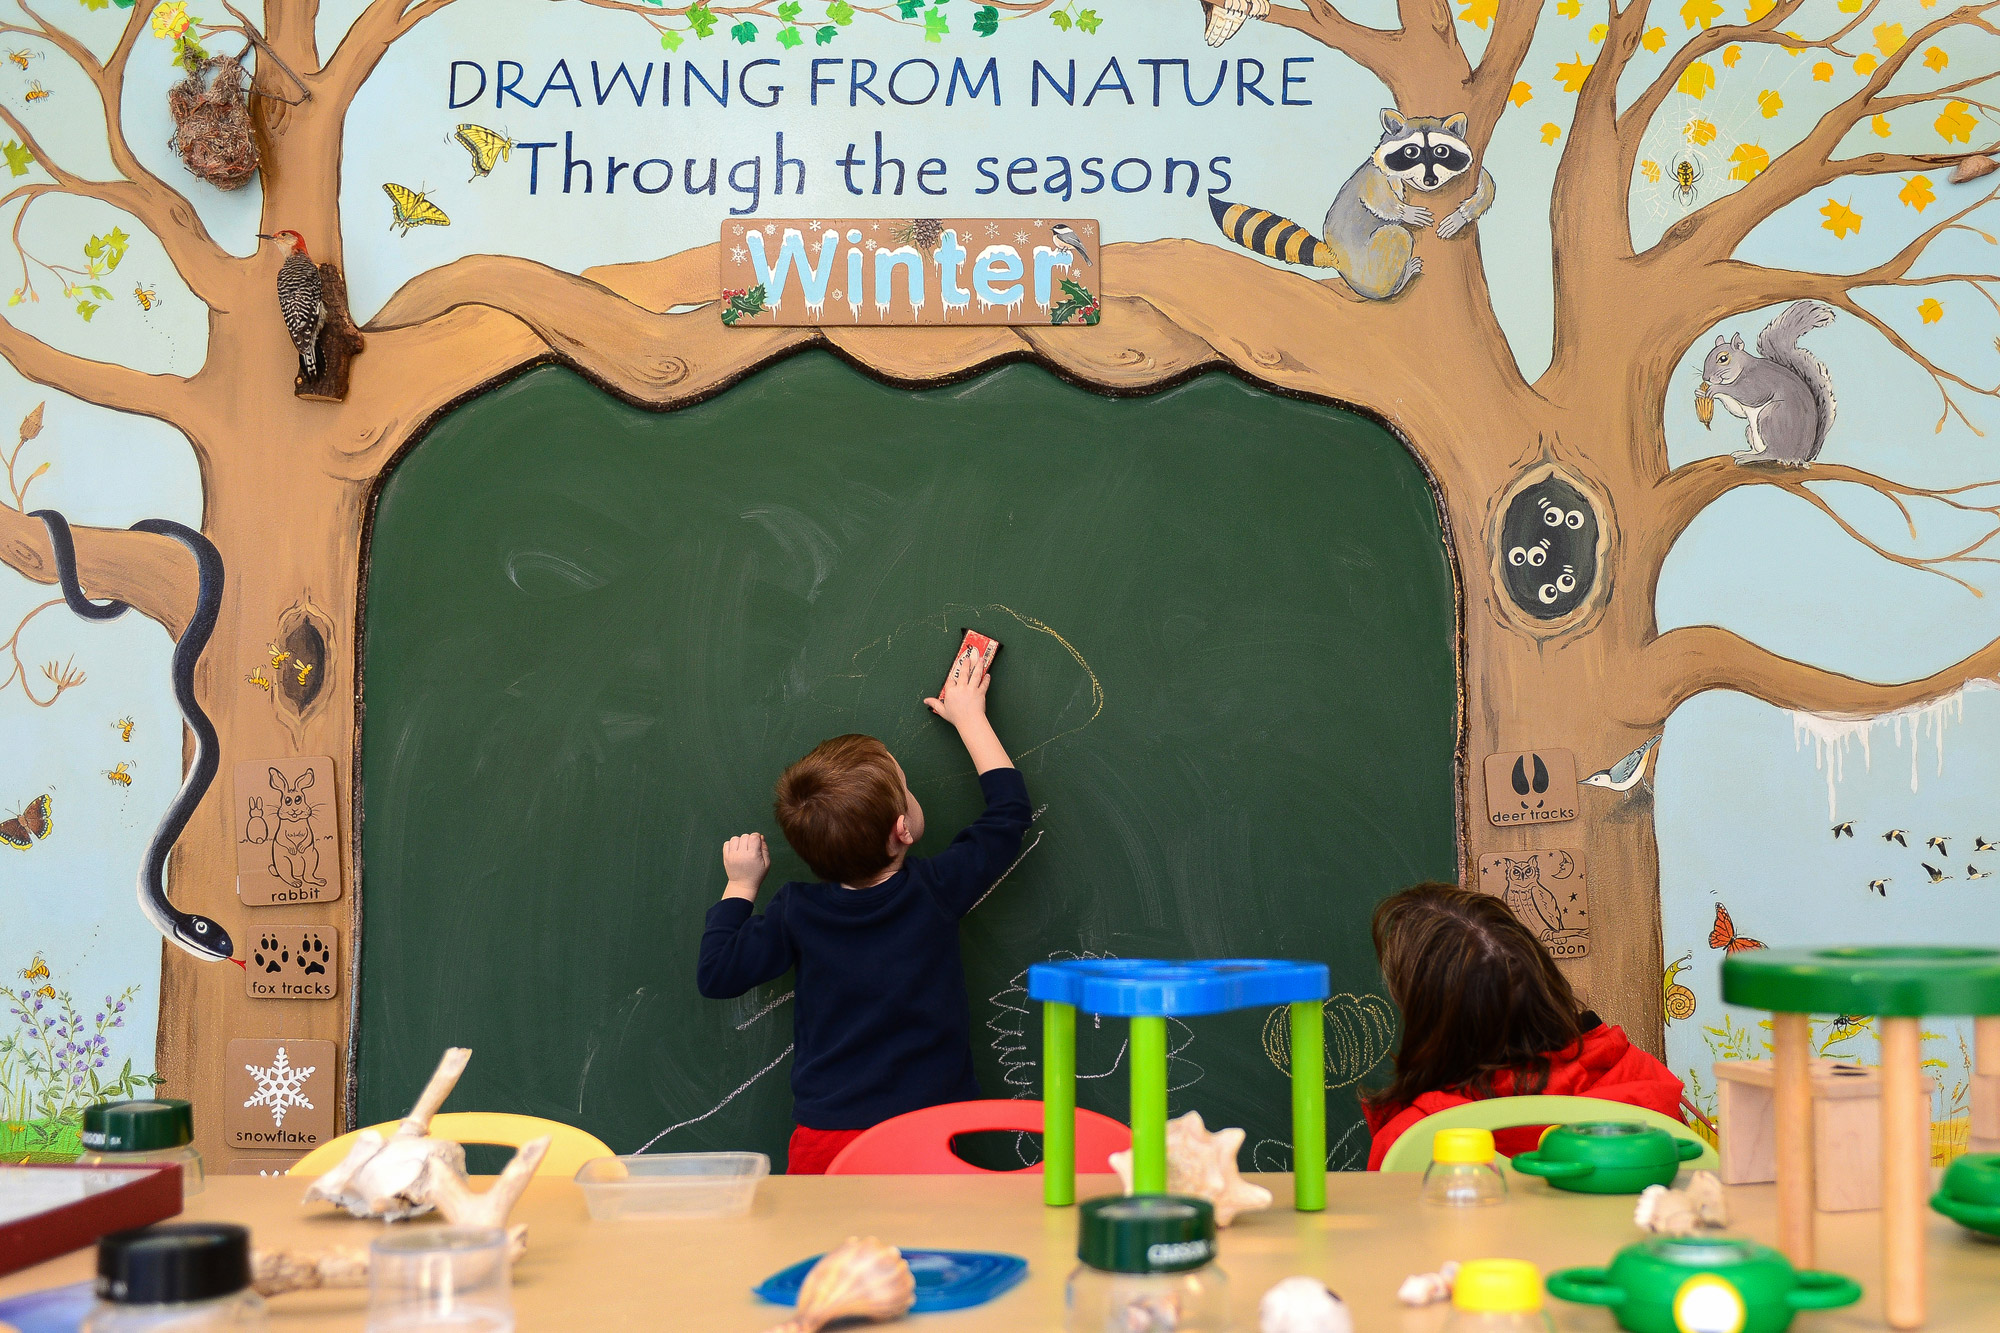 Adam Snyder, left, 4, of Cedar Acres draws on a chalkboard with his mother Leah.